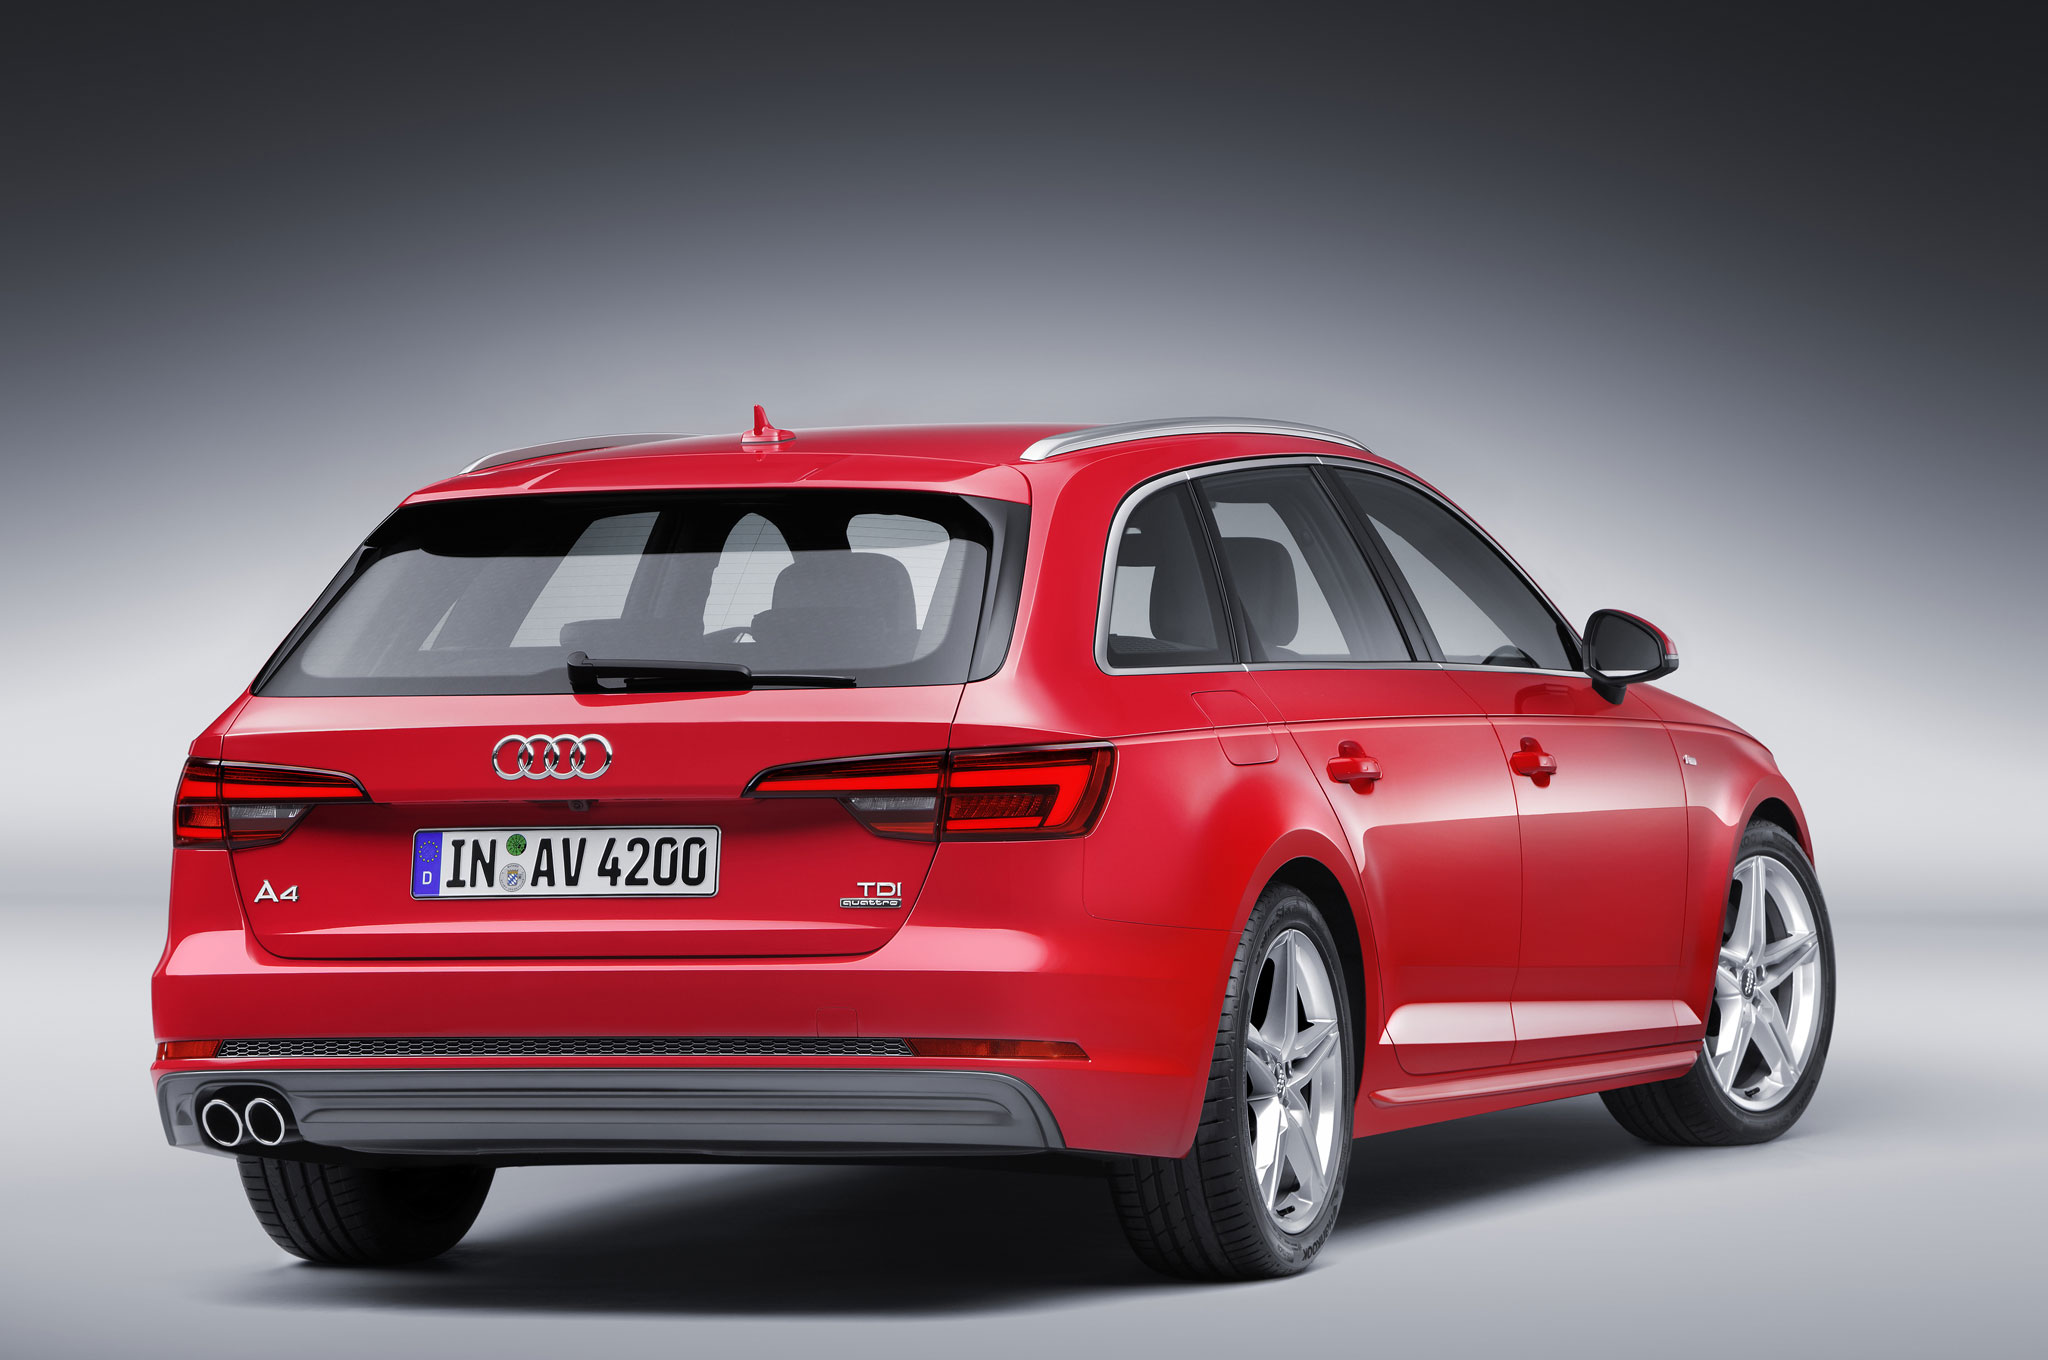 2017 audi a4 revealed with lighter weight evolutionary design. Black Bedroom Furniture Sets. Home Design Ideas